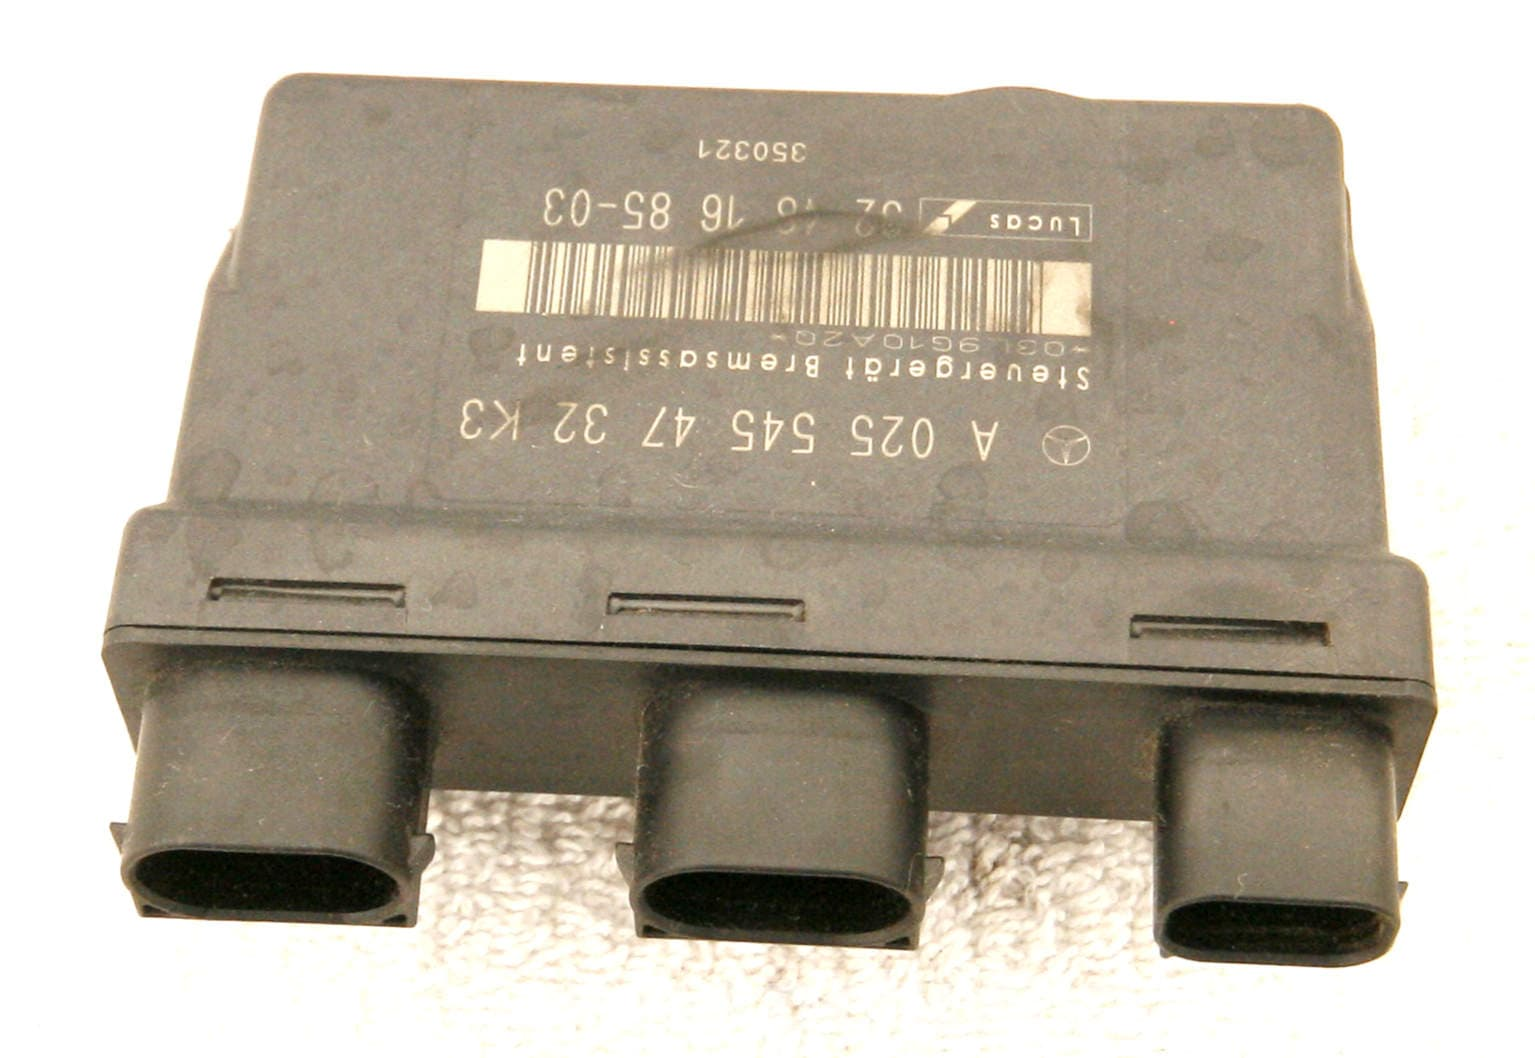 Tremendous Mercedes Benz Slk 230 Brake Assist Control Module Replacement 1998 Wiring Digital Resources Antuskbiperorg